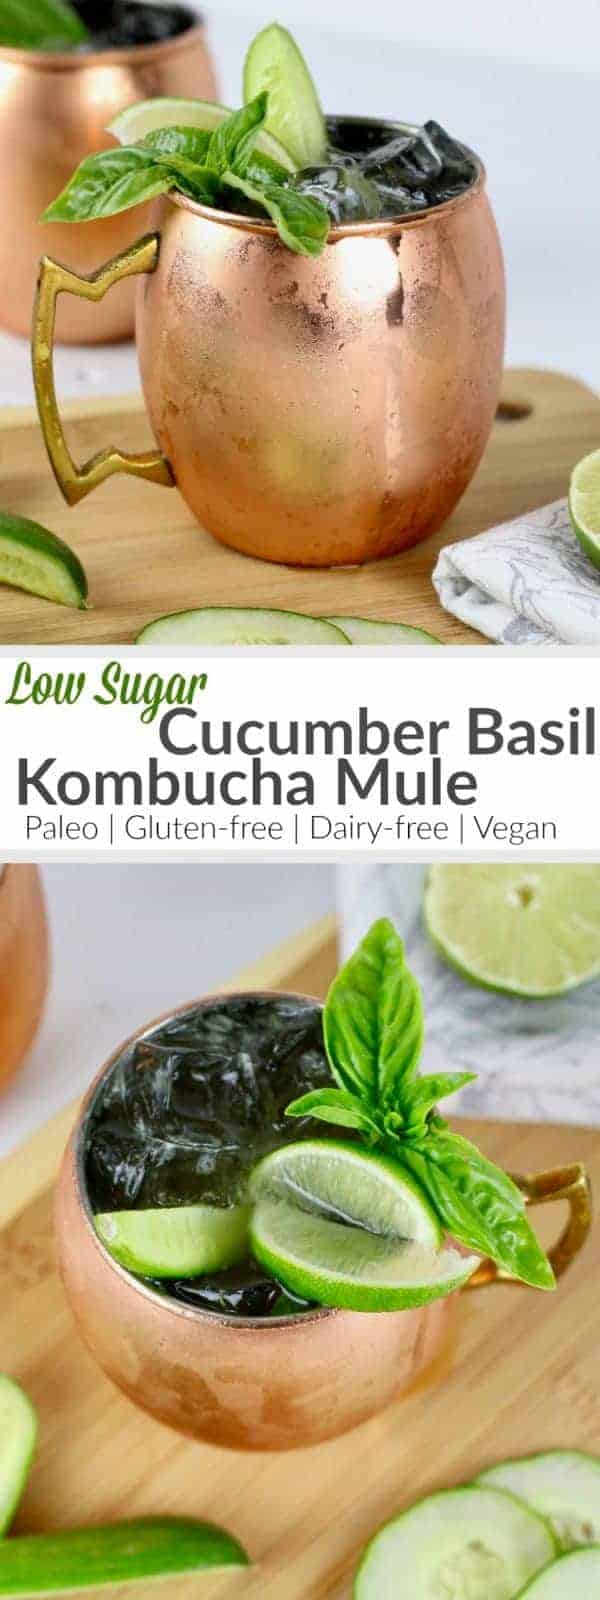 Cool off and kick-back with this garden-fresh, low-sugar Cucumber Basil Kombucha Mule! | The Real Food Dietitians | https://therealfoodrds.com/cucumber-basil-kombucha-mule/